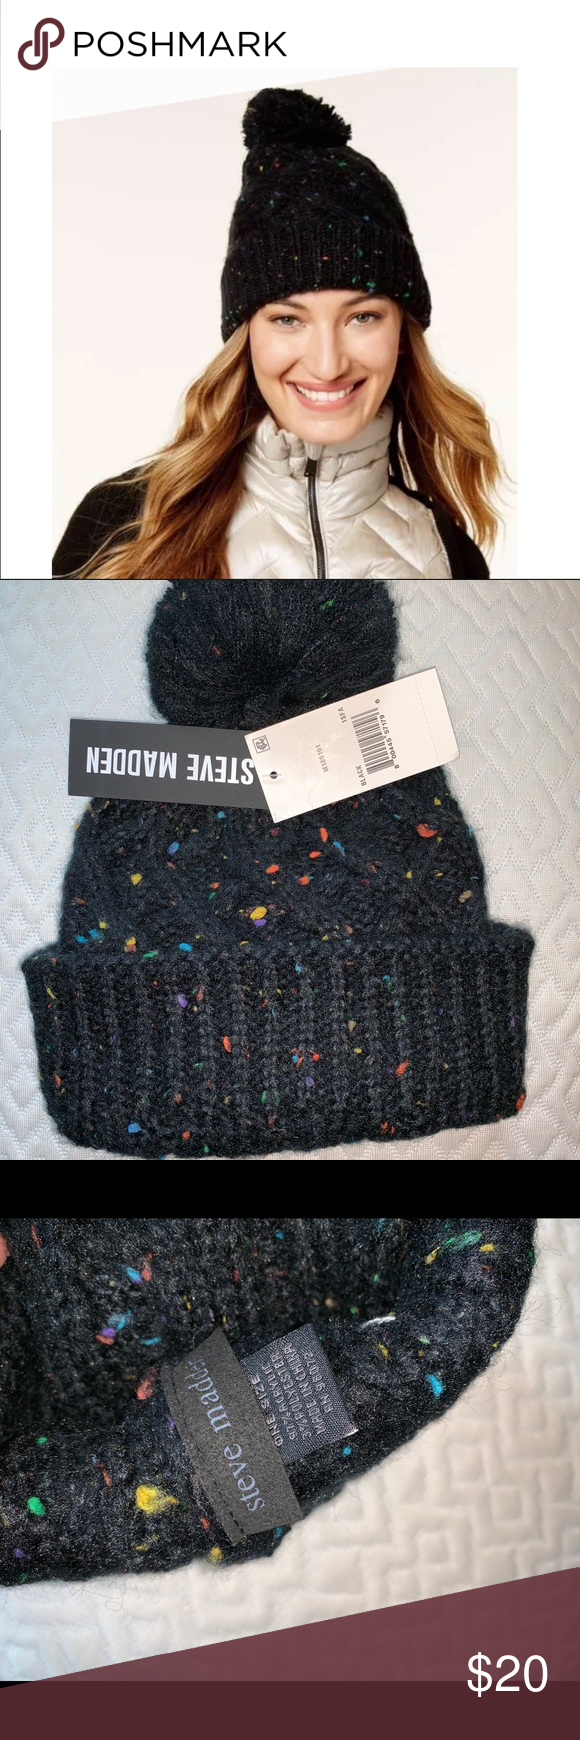 a6809cbd9c92f Steven Madden Speckle Pom Pom Beanie New w  Tags Steven Madden Cable Knit  Speckle Black blue pink green Beanie Fun flecks of color speckle a Steve  Madden ...